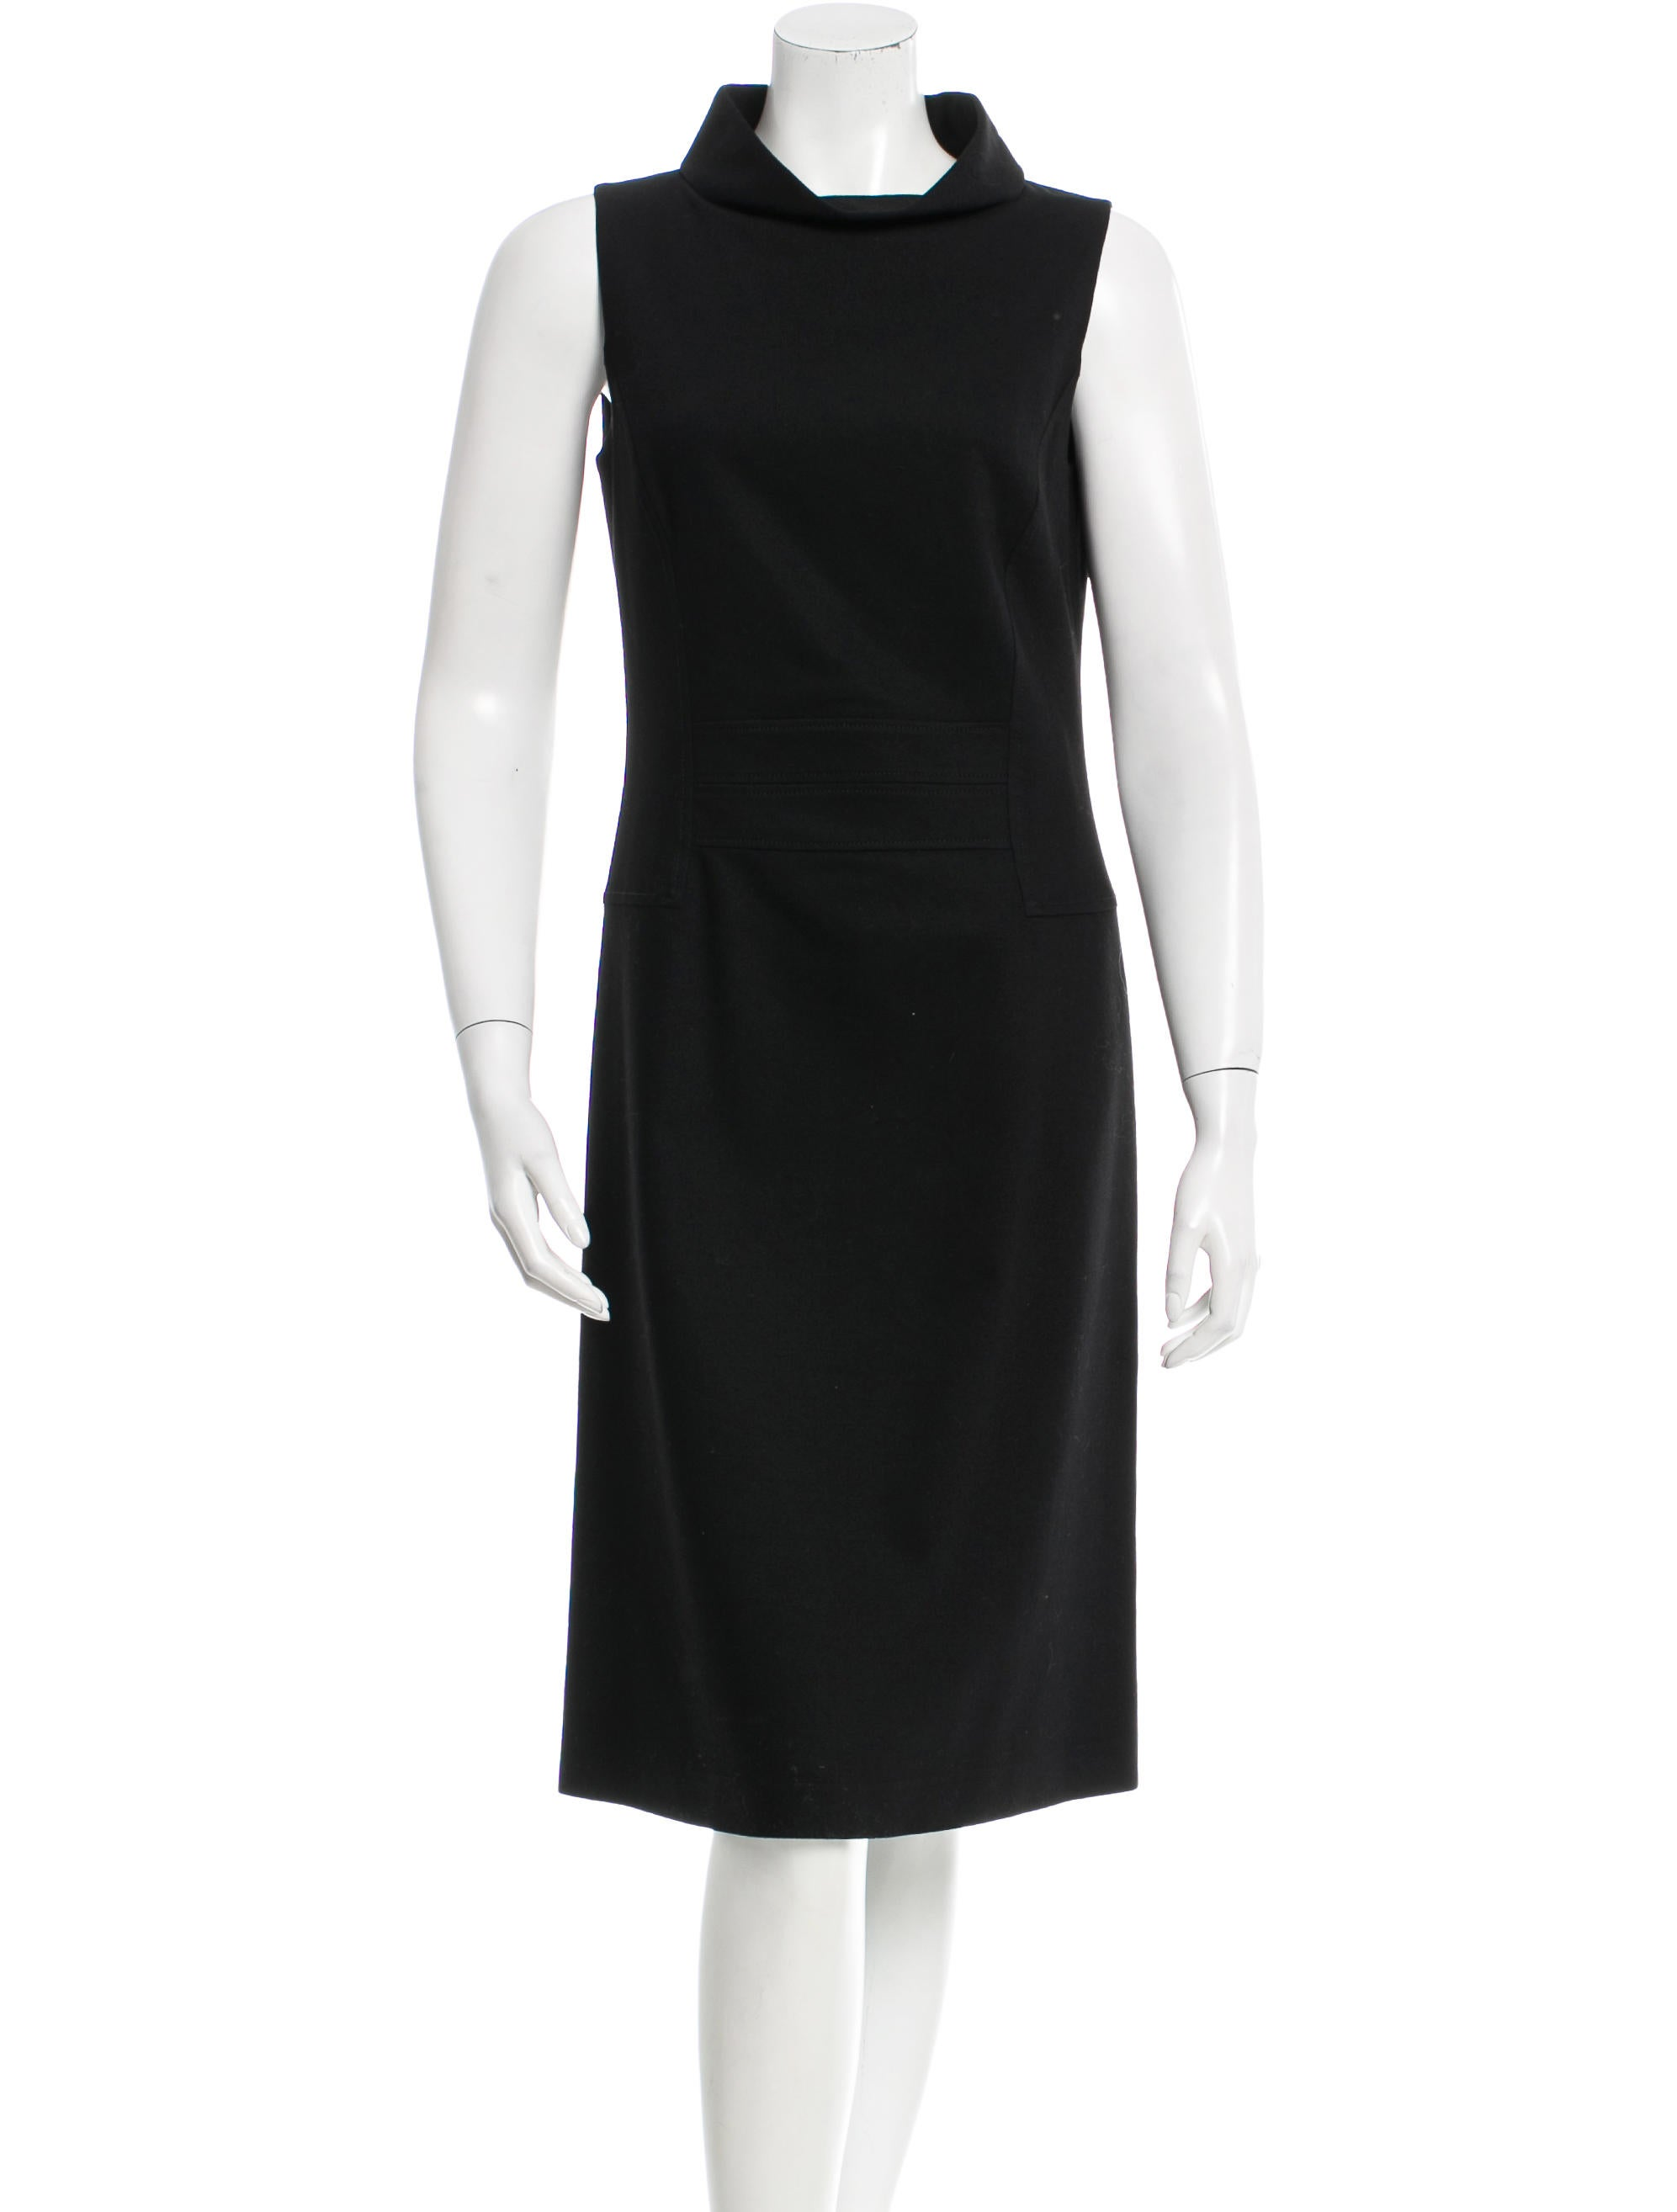 Cheap Price Discount Authentic Luciano Barbera Wool Sleeveless Dress Buy Cheap New Arrival Free Shipping Clearance Cheap Wholesale Price Amazing Price UVJig